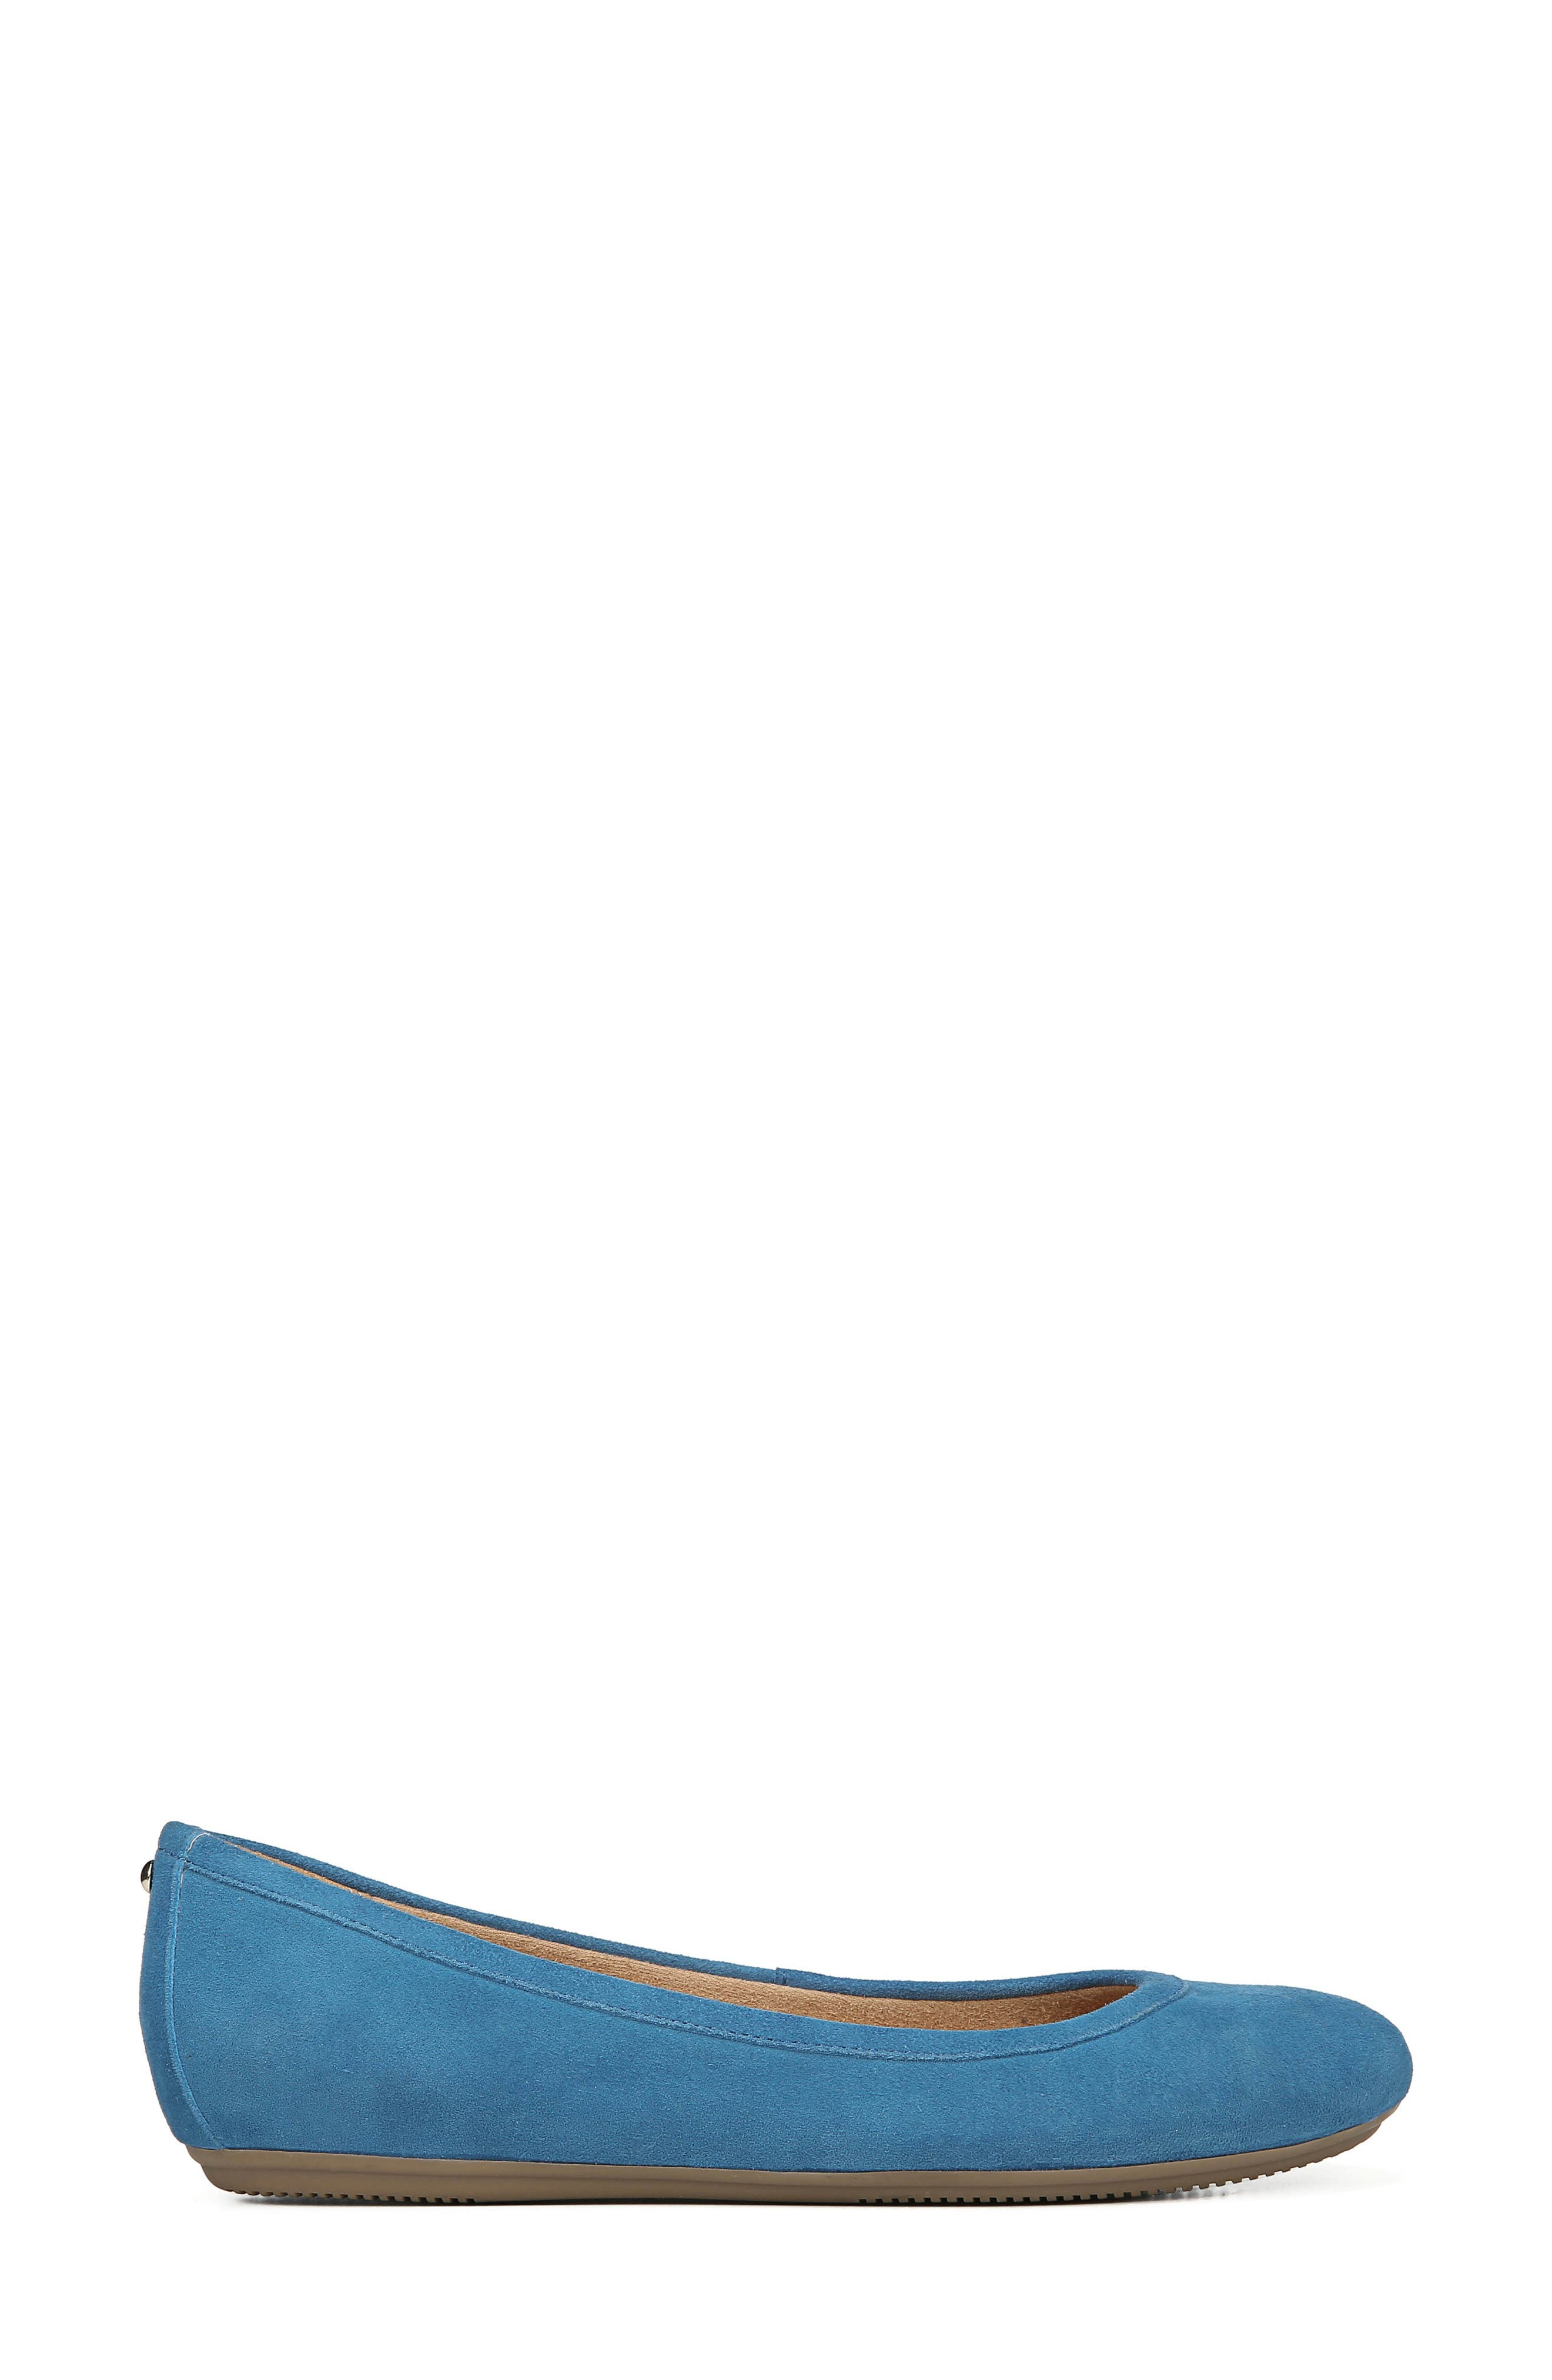 Brittany Flat,                             Alternate thumbnail 3, color,                             ADMIRAL BLUE LEATHER